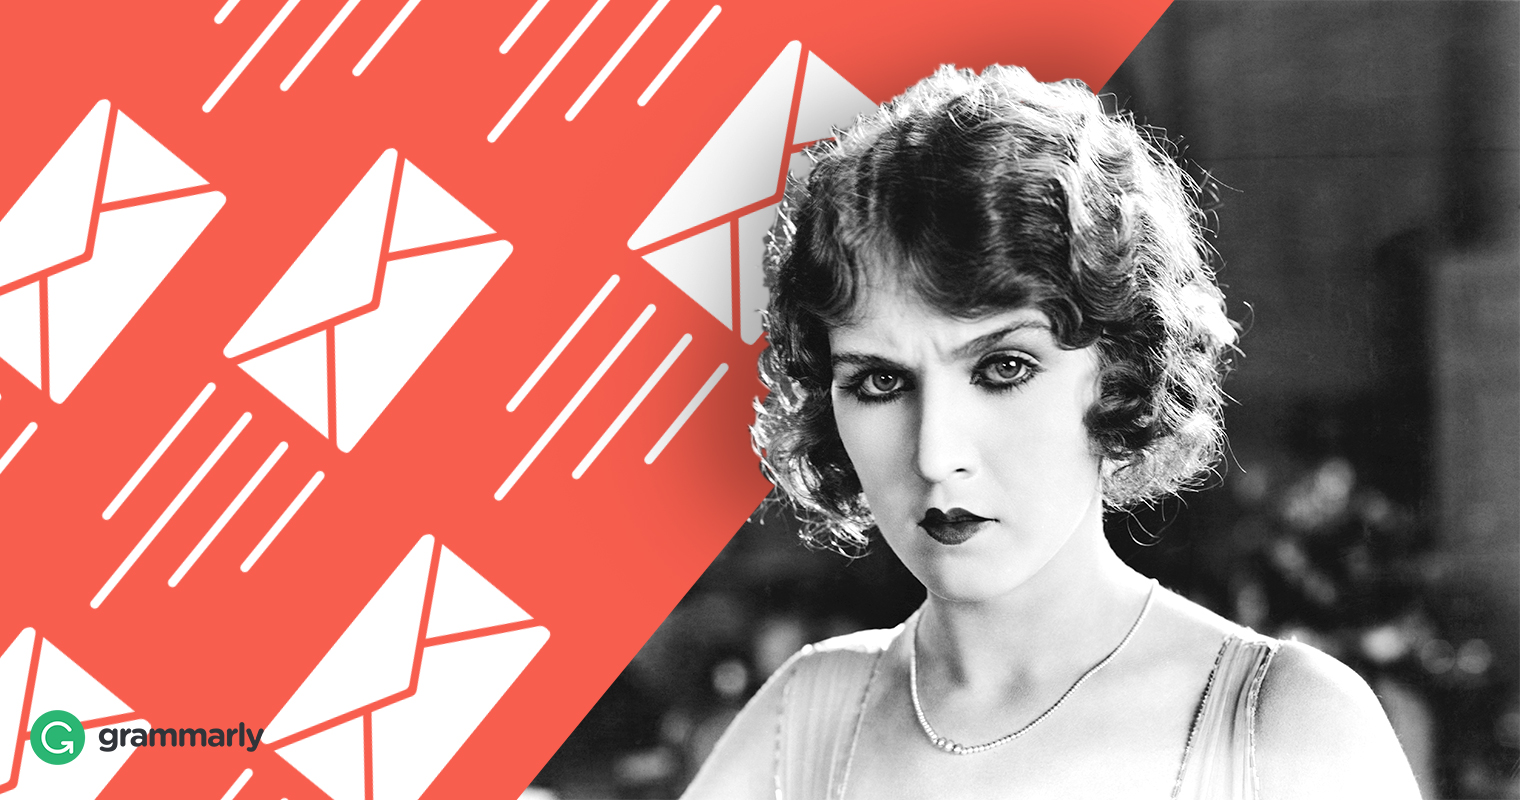 How To Address A Letter To A Woman Grammarly